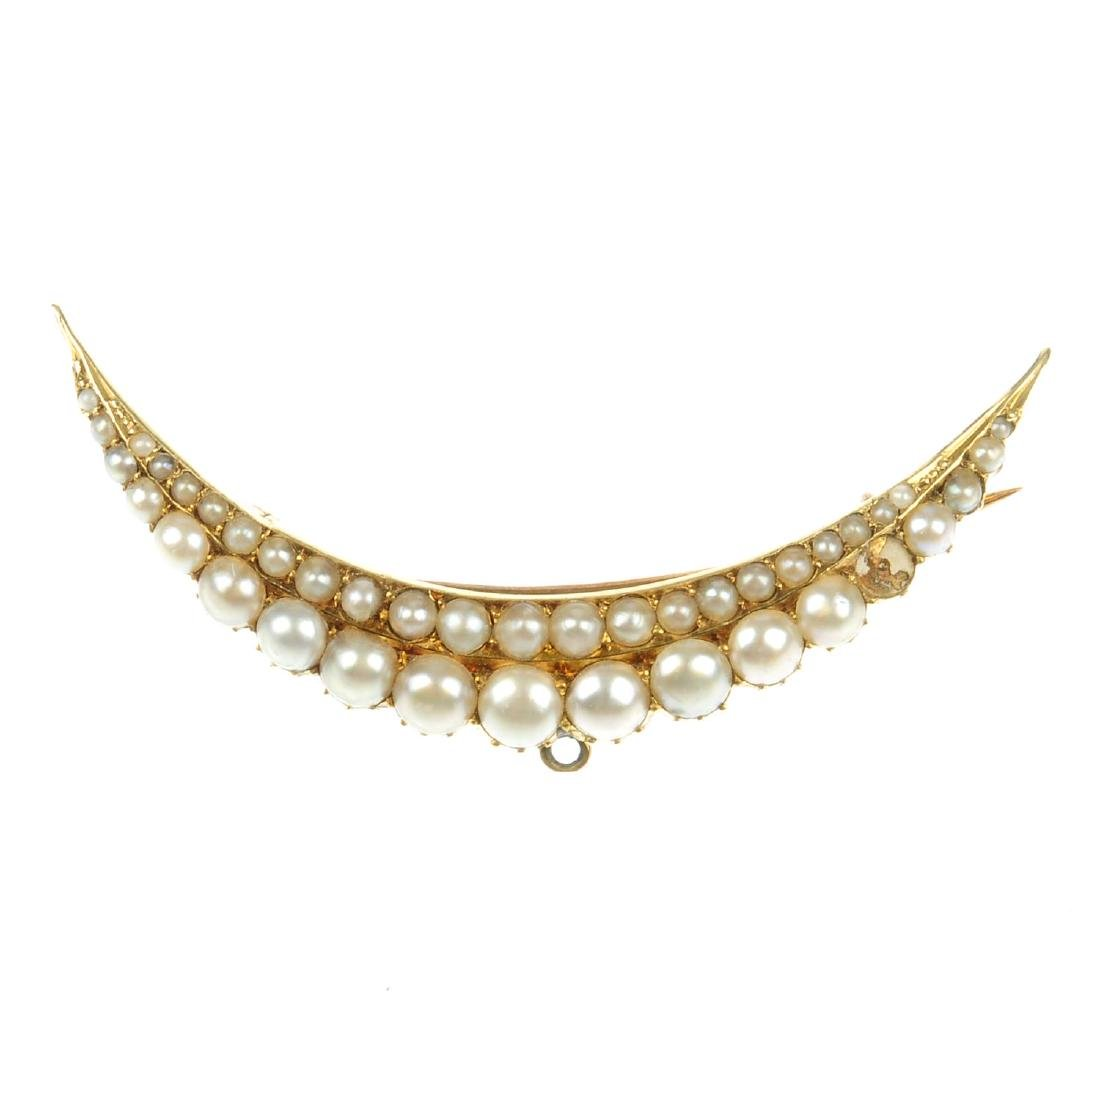 A split pearl brooch. Of crescent shape, designed as